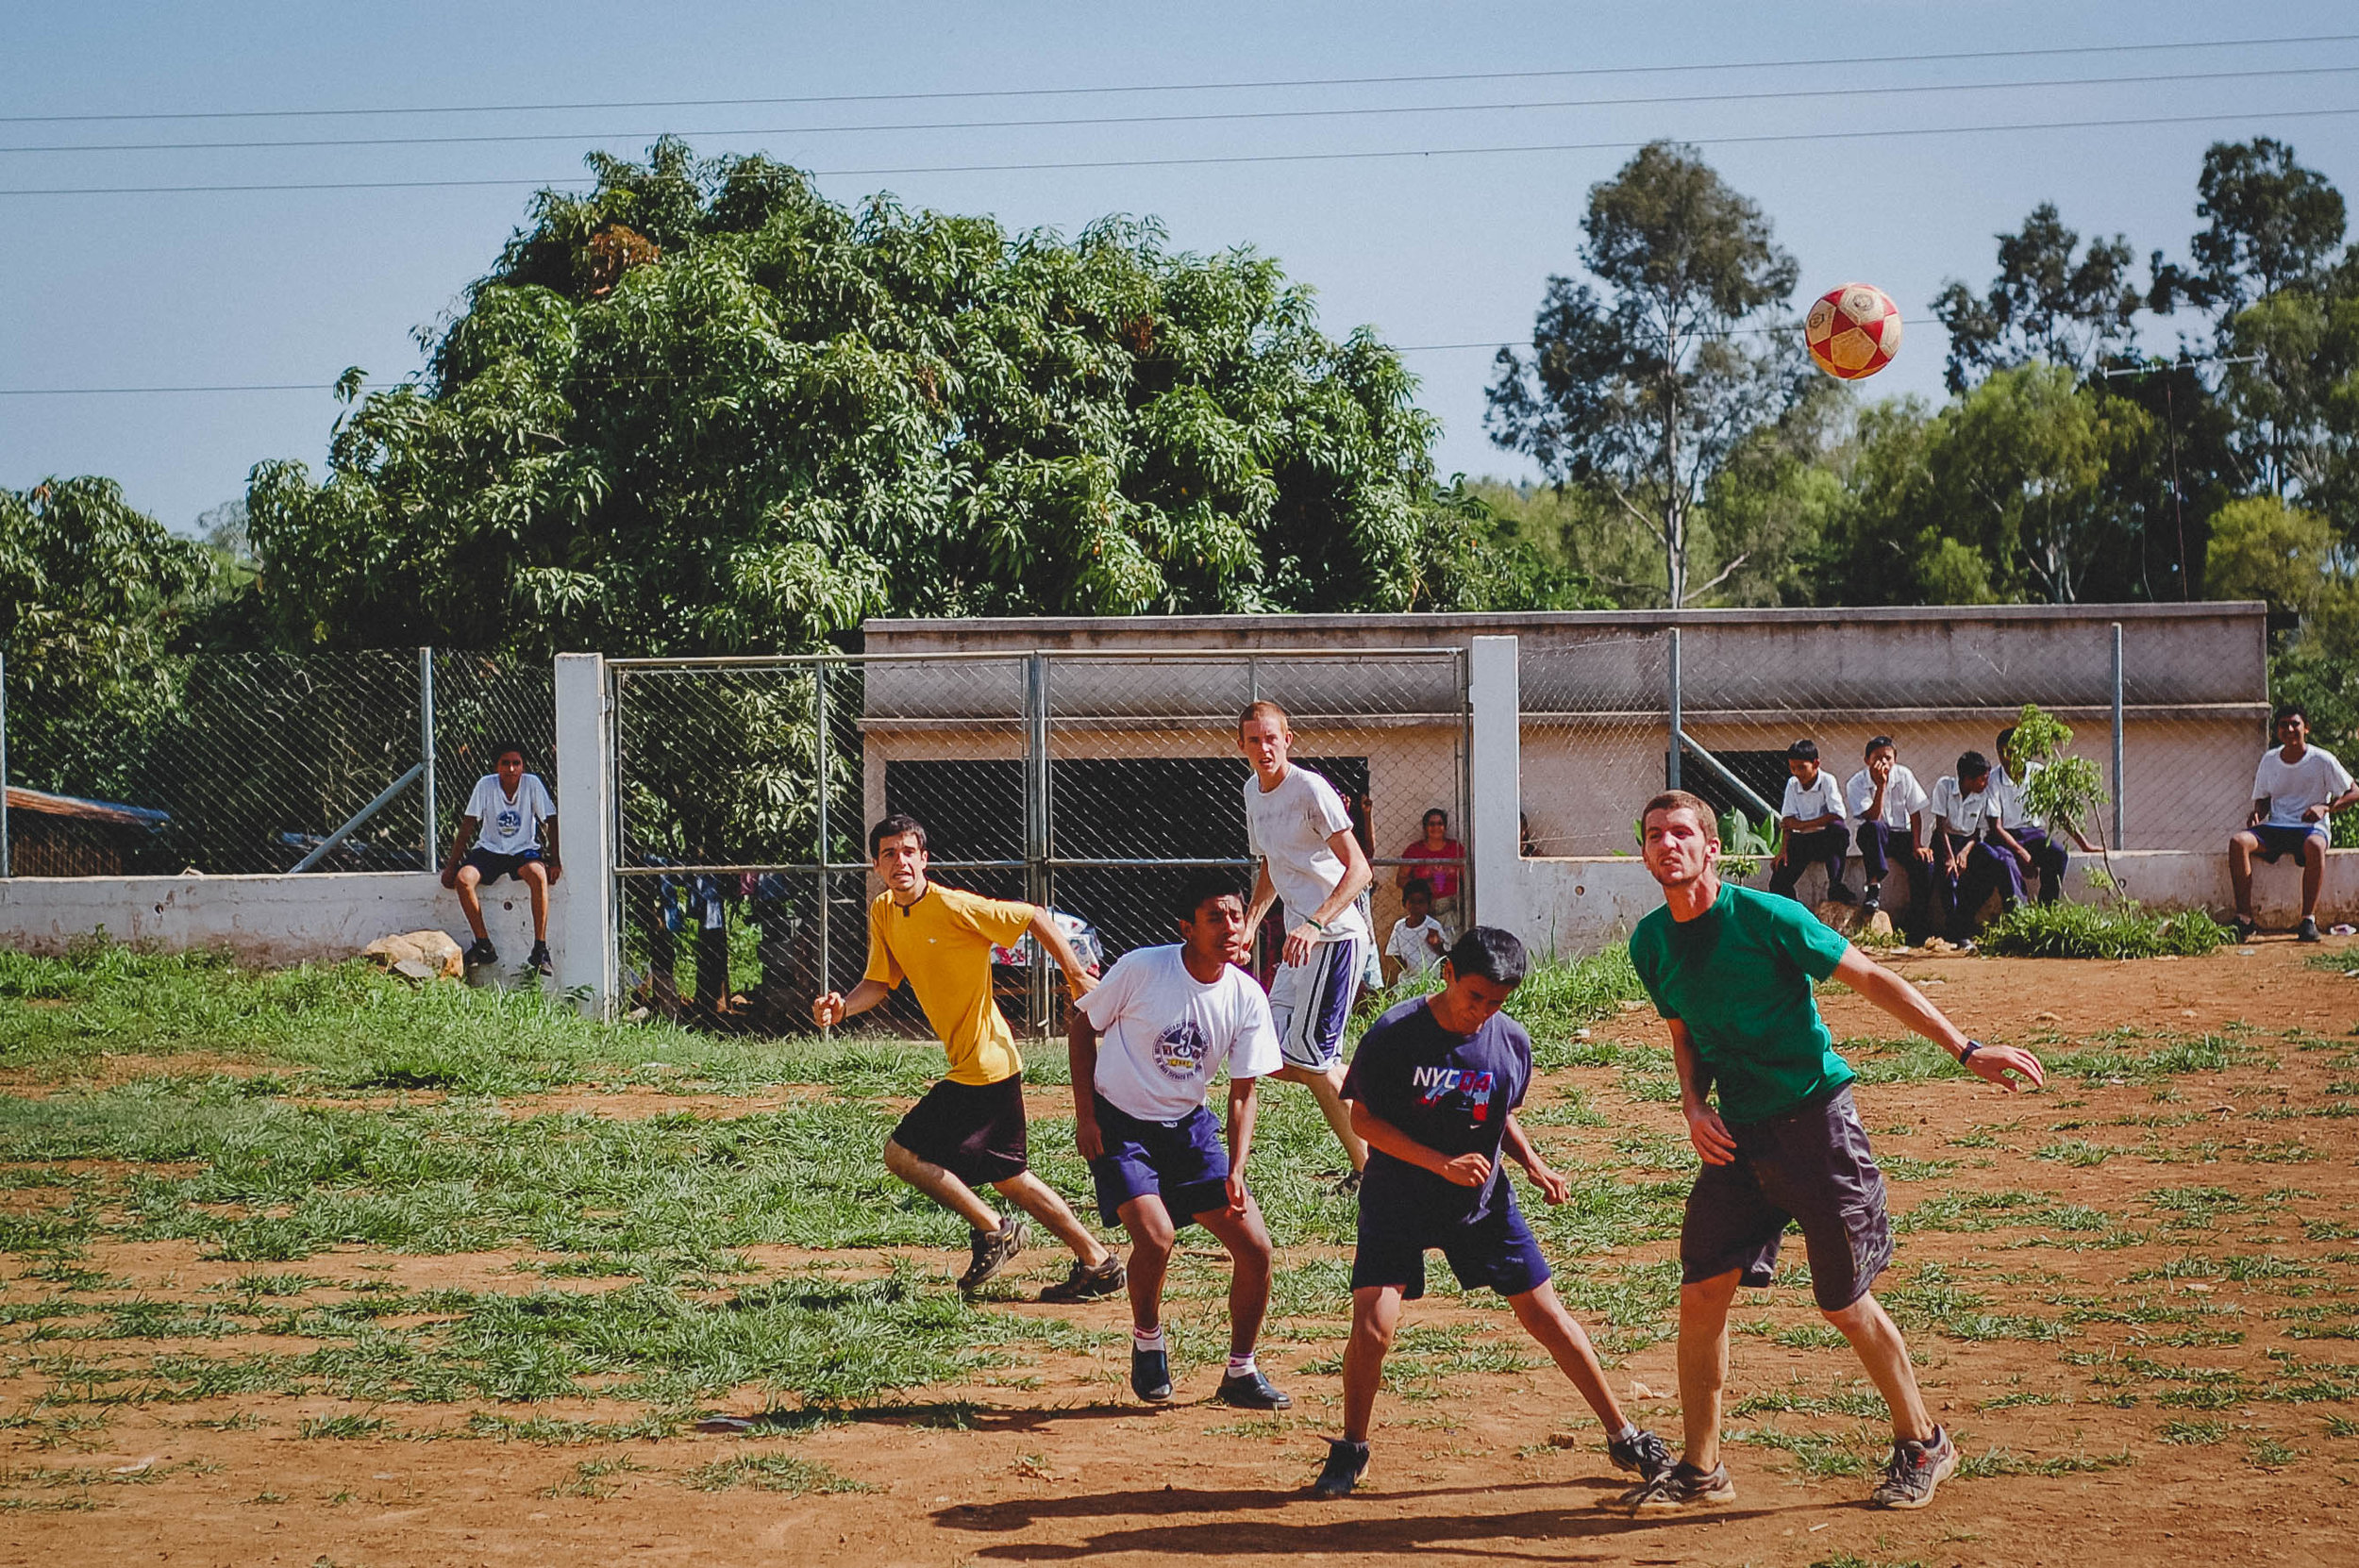 Soccer games on    Summer Internship    are more than just a game. They're an opportunity for participants to learn how they can work together to accomplish a shared goal - an essential component of our development work.